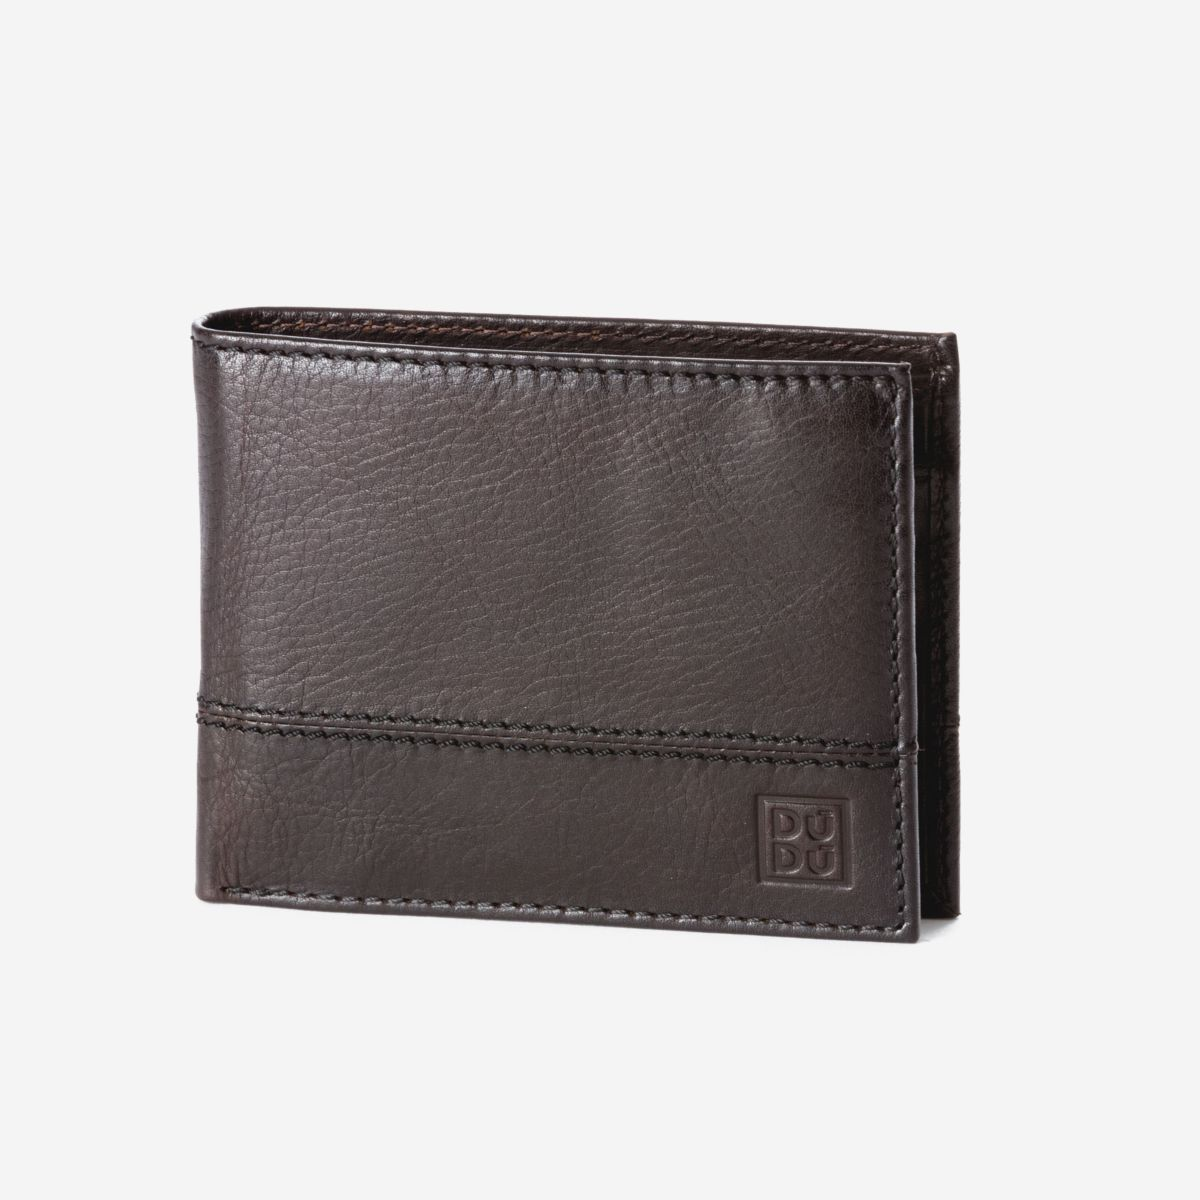 DuDu Mens Leather Wallet with Coin Pocket - Dark Brown